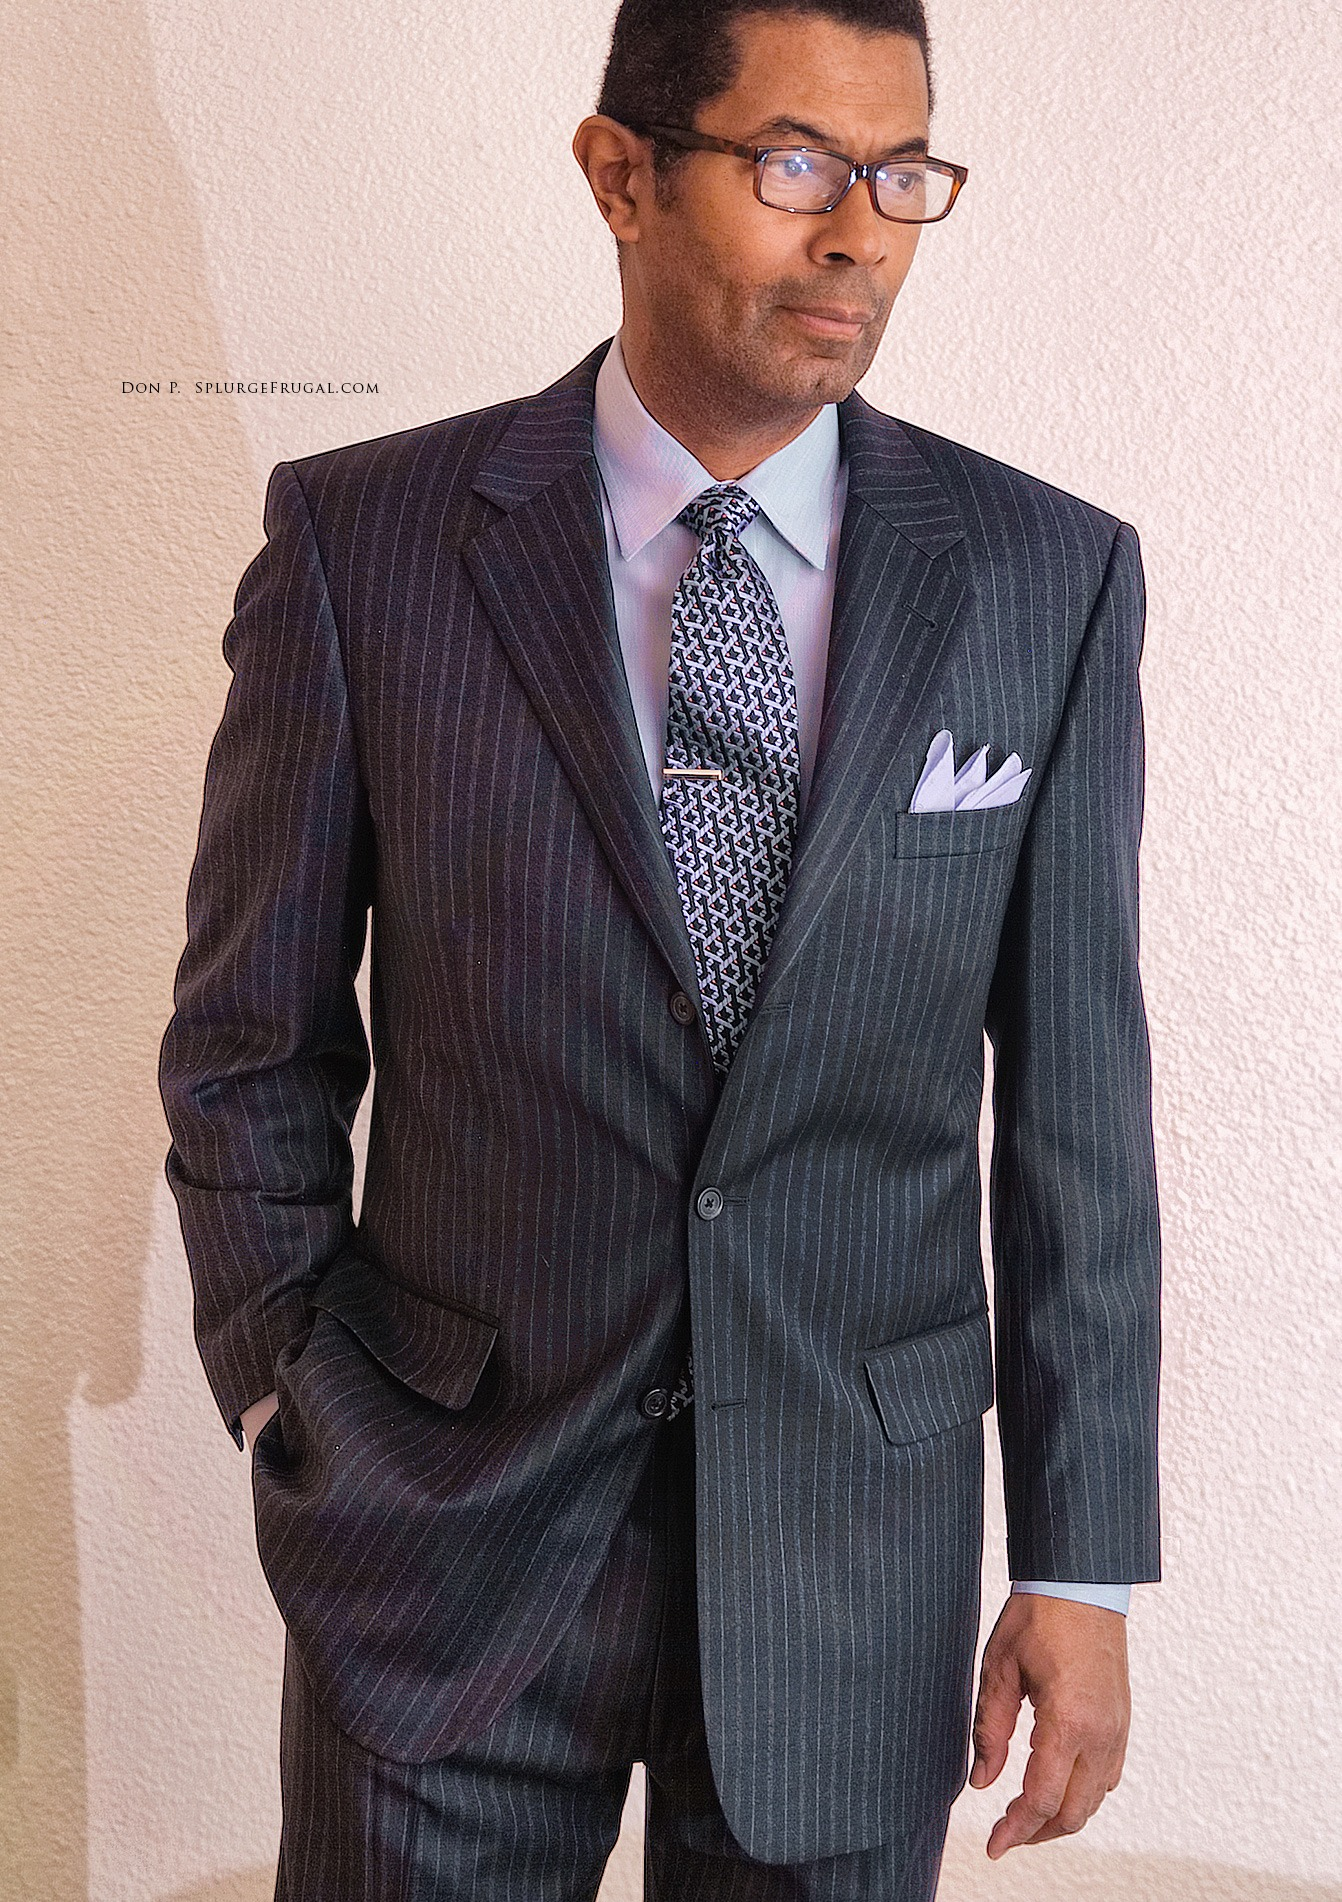 Where To Buy Used Suits And How Splurgefrugal Com